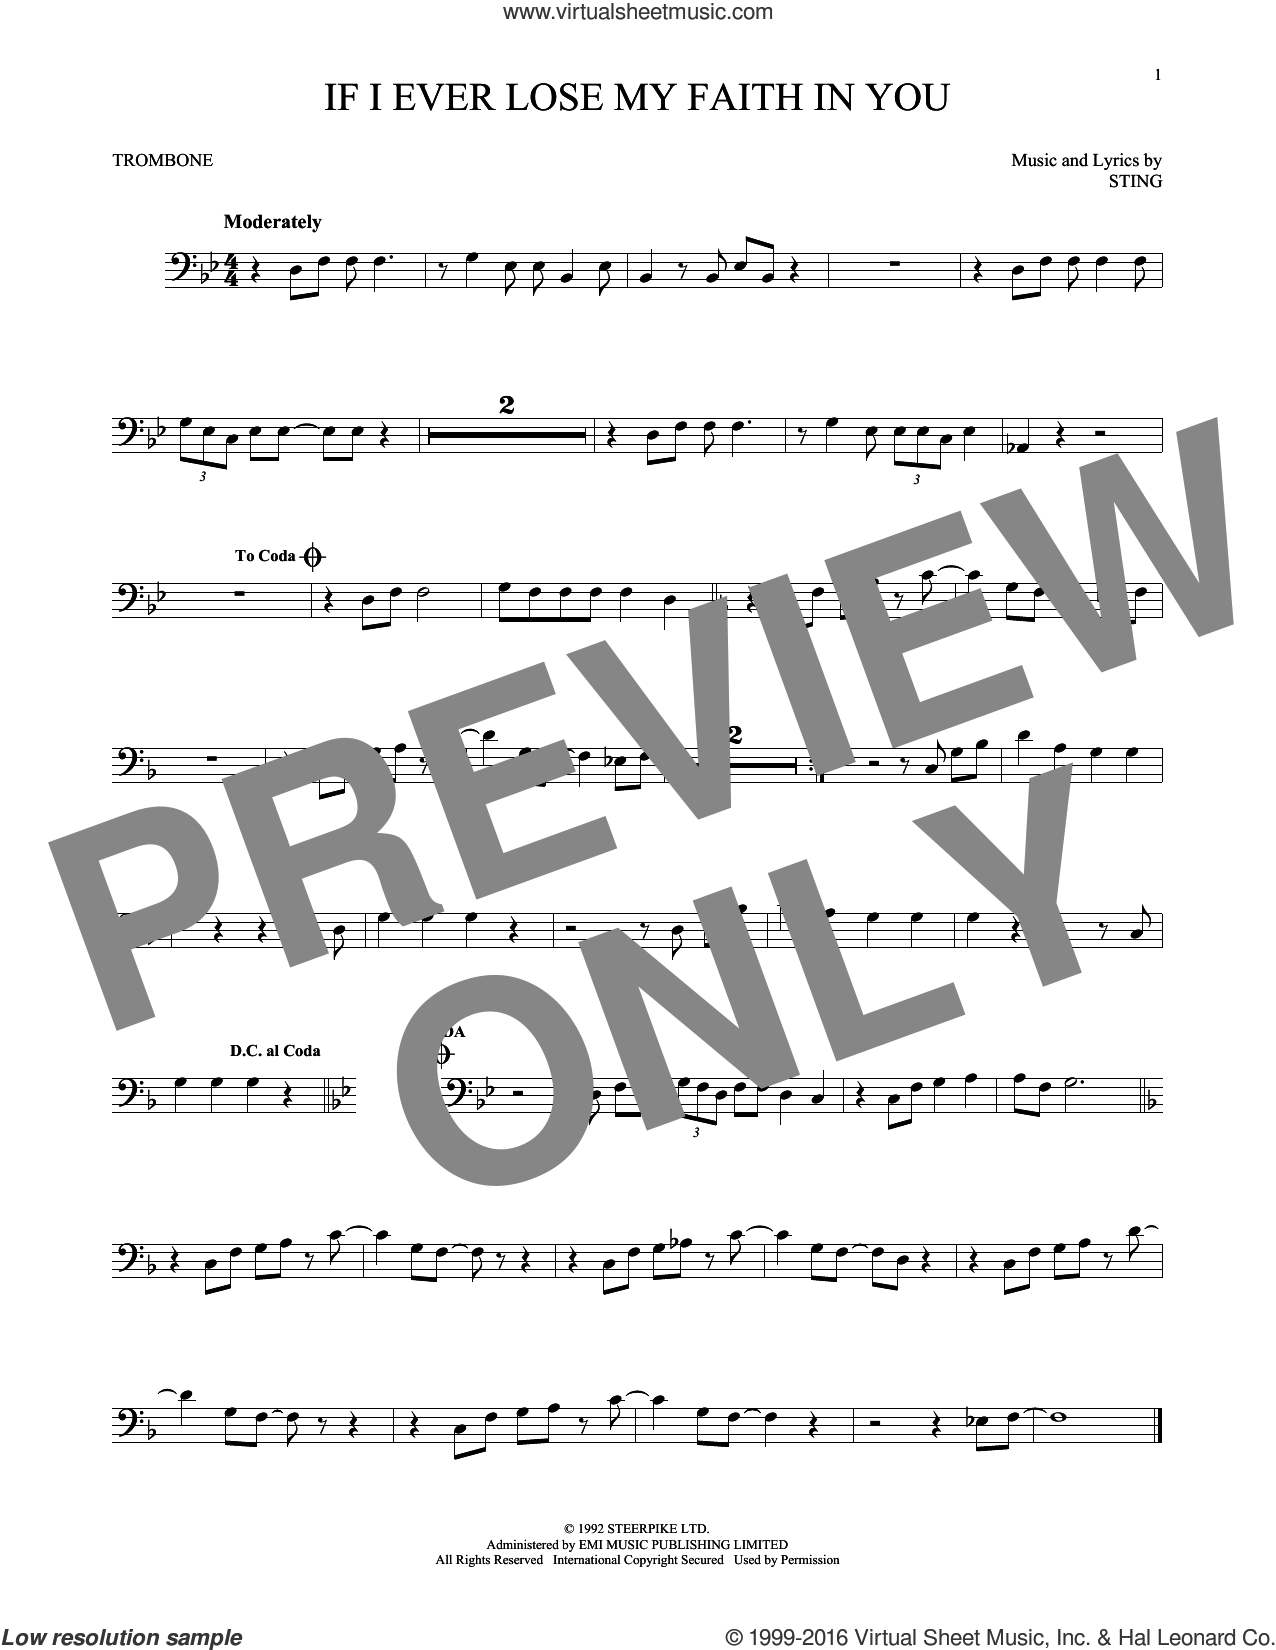 If I Ever Lose My Faith In You sheet music for trombone solo by Sting, intermediate skill level